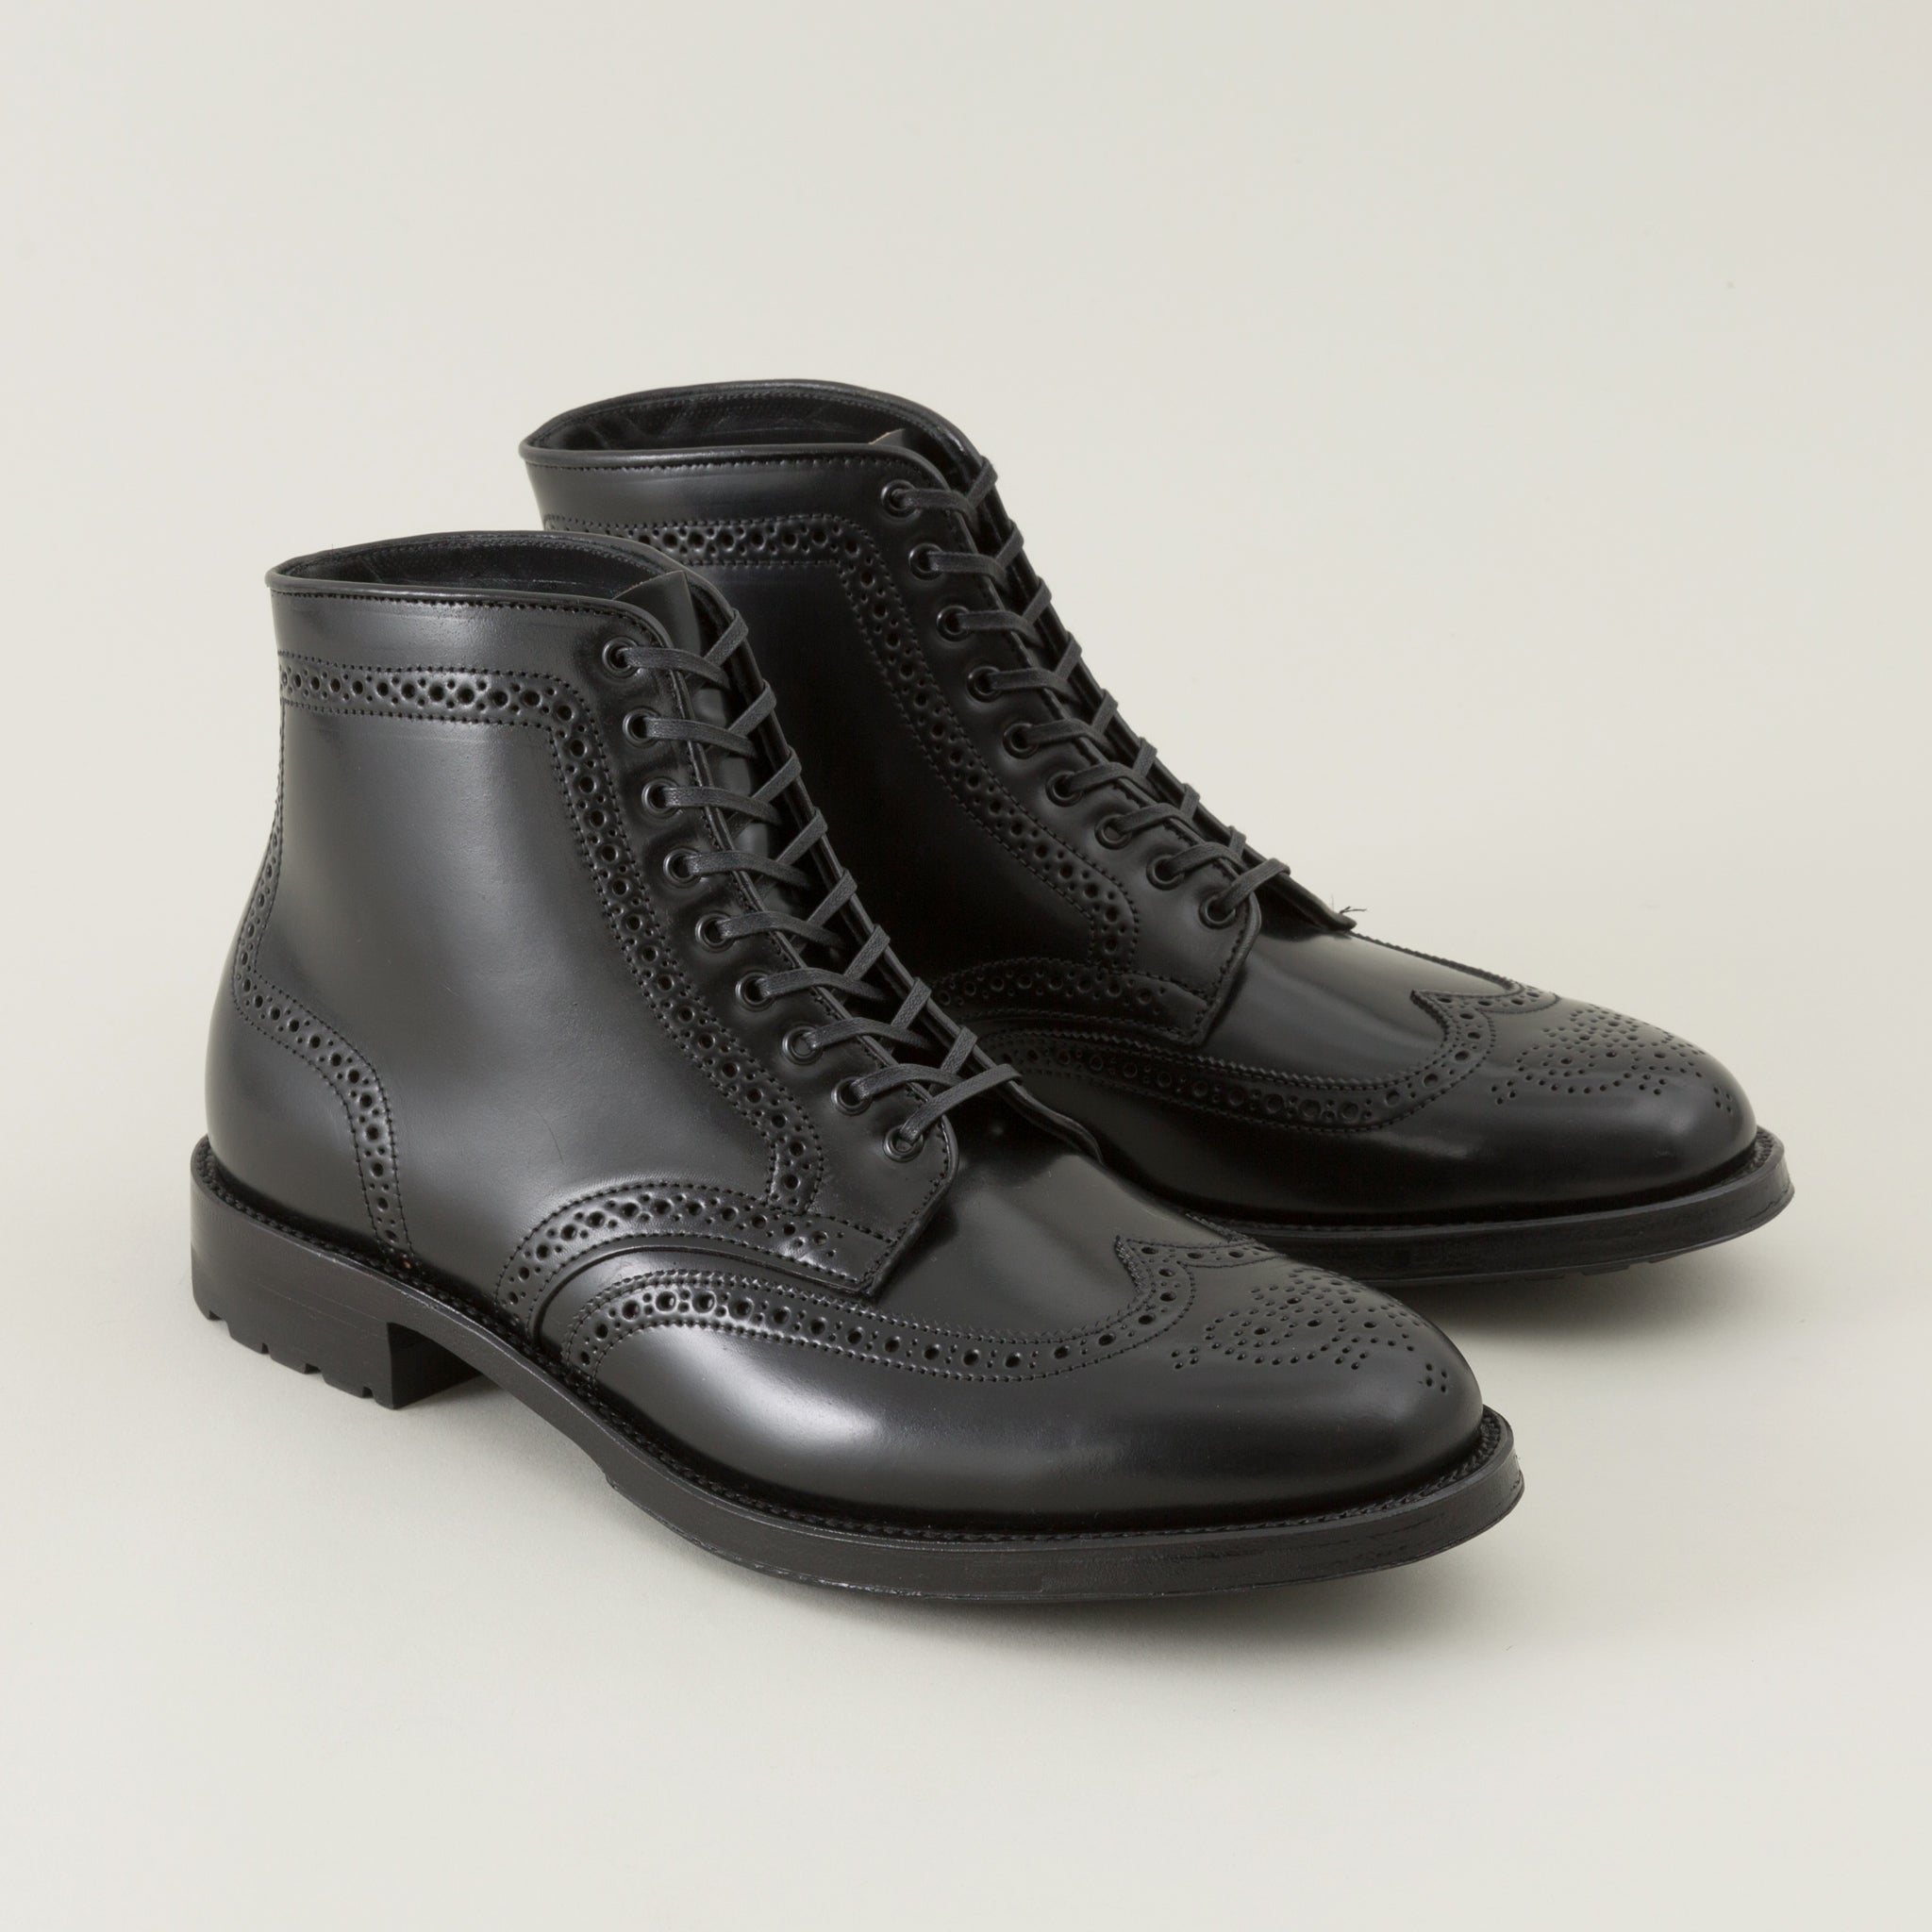 Wing Tip Boot, Black Shell Cordovan